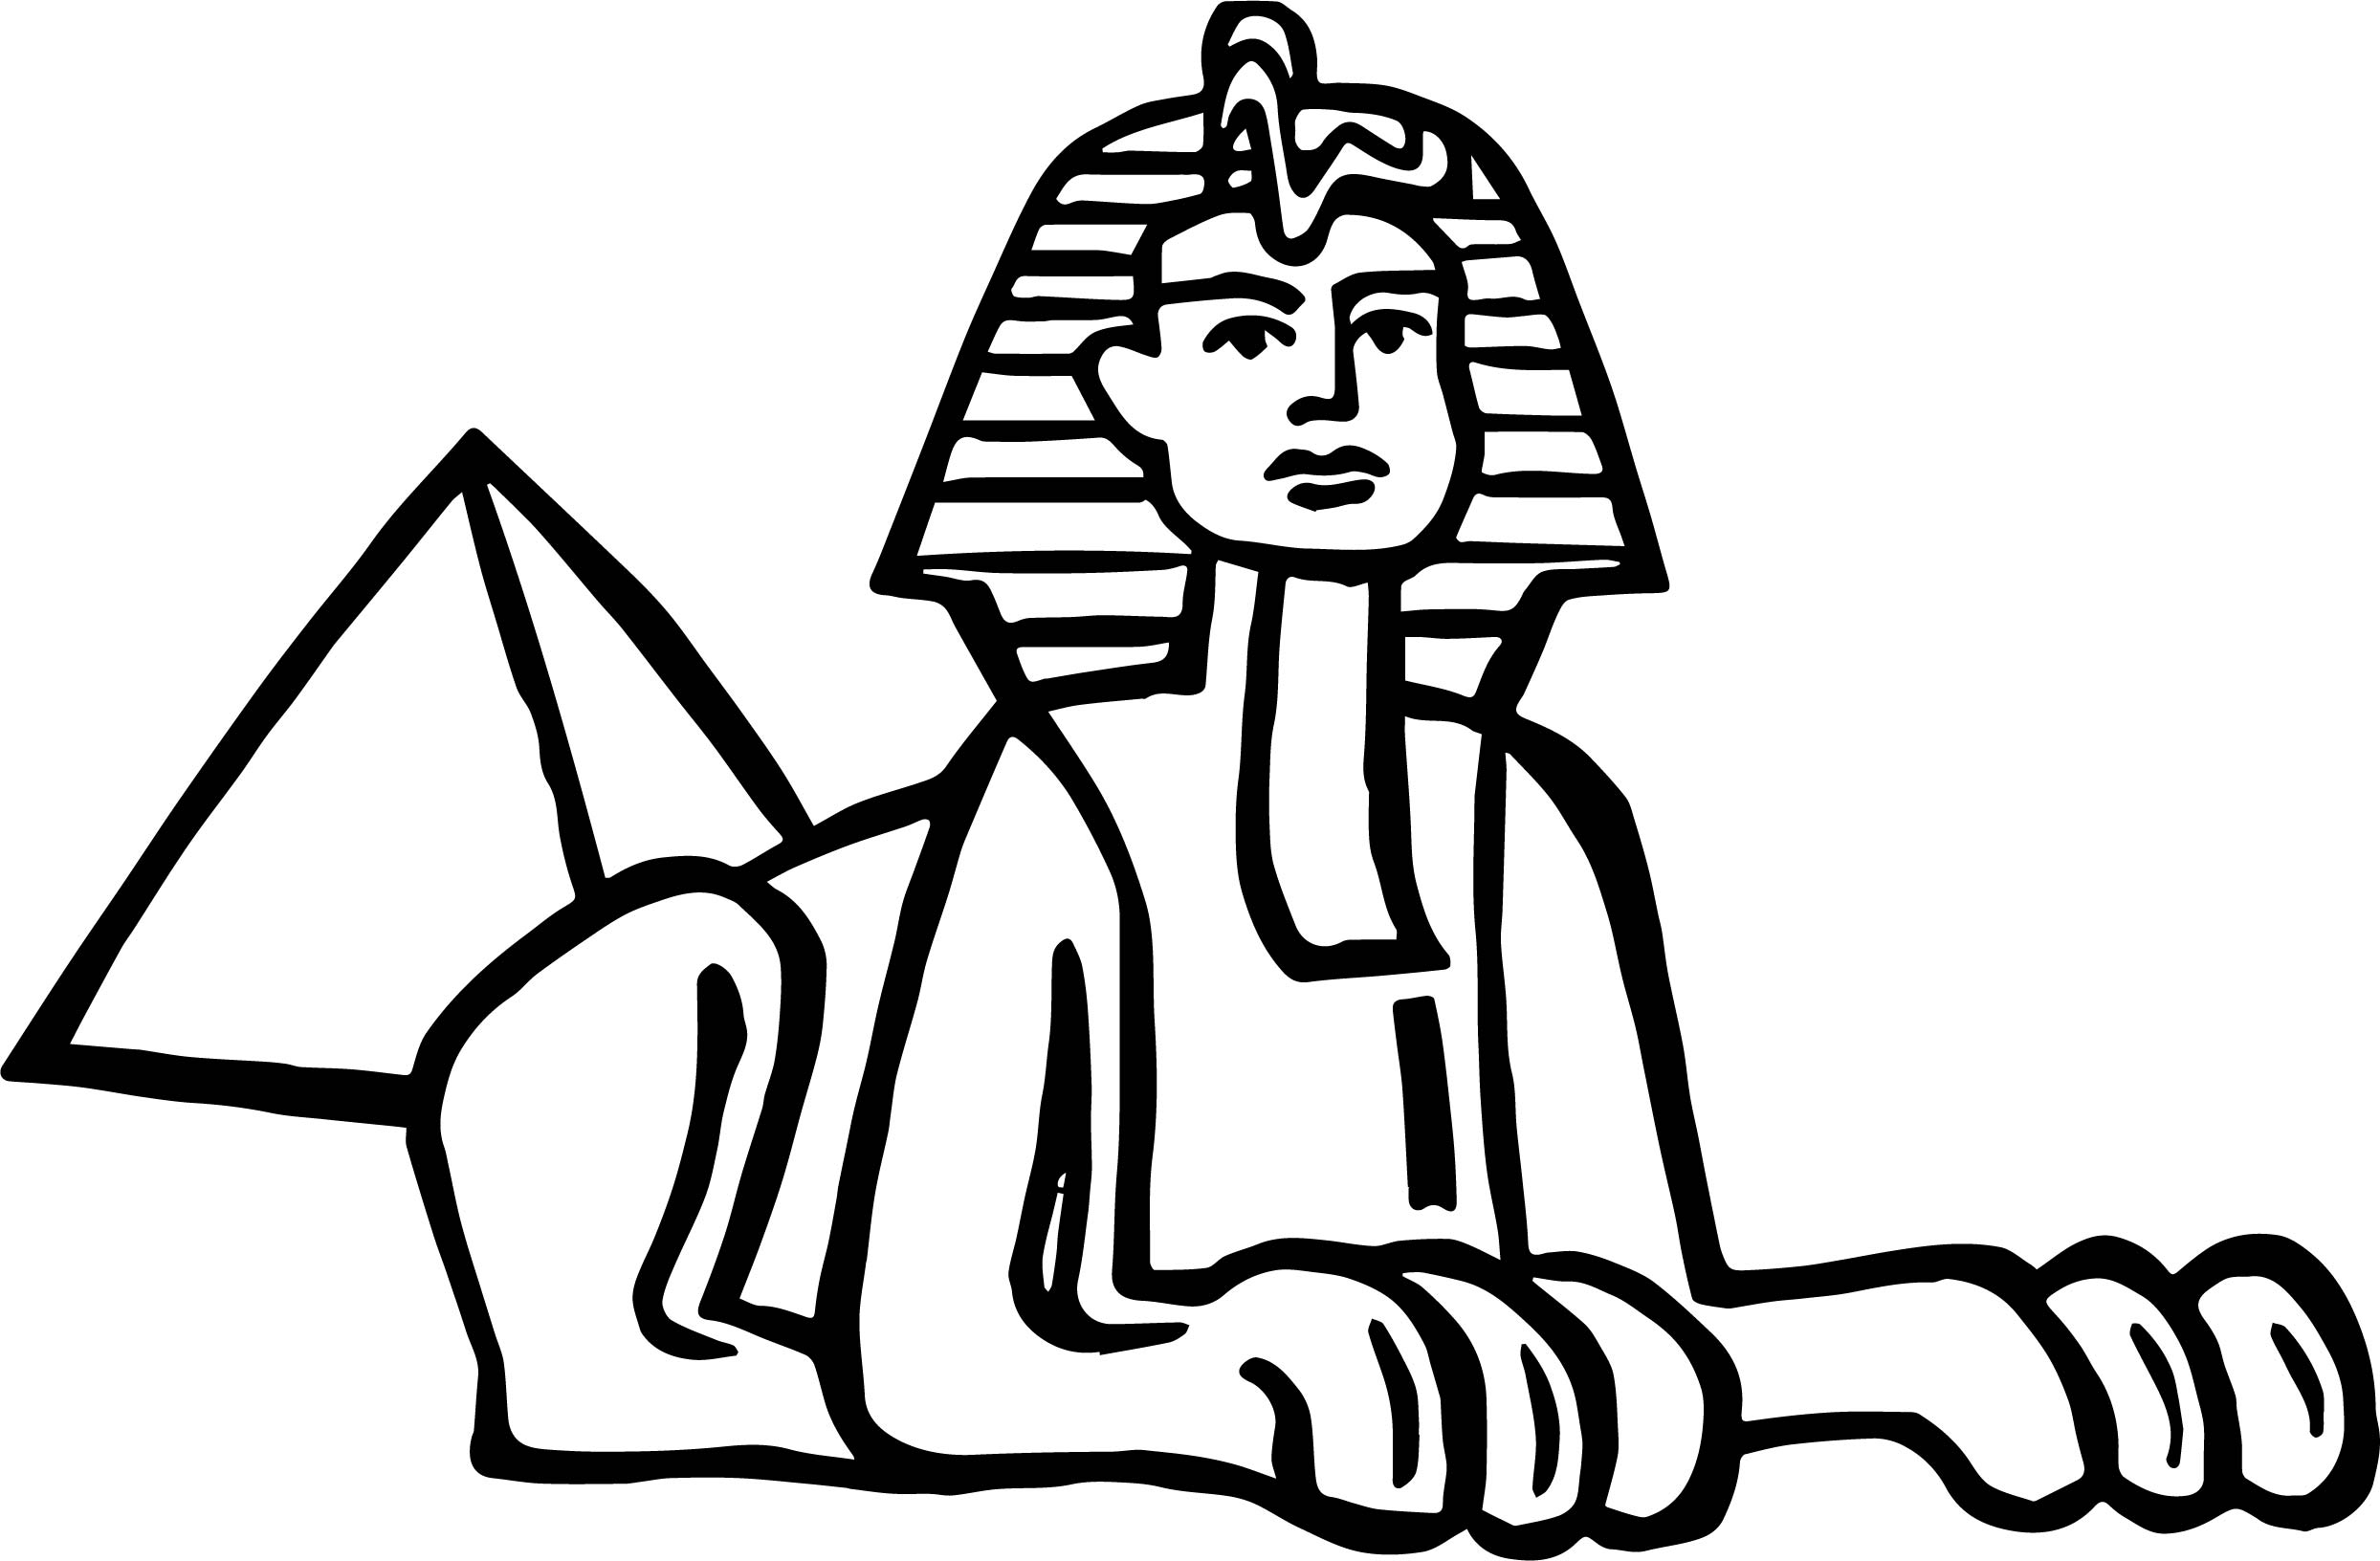 Splendor Sphinx In Egypt Coloring Page